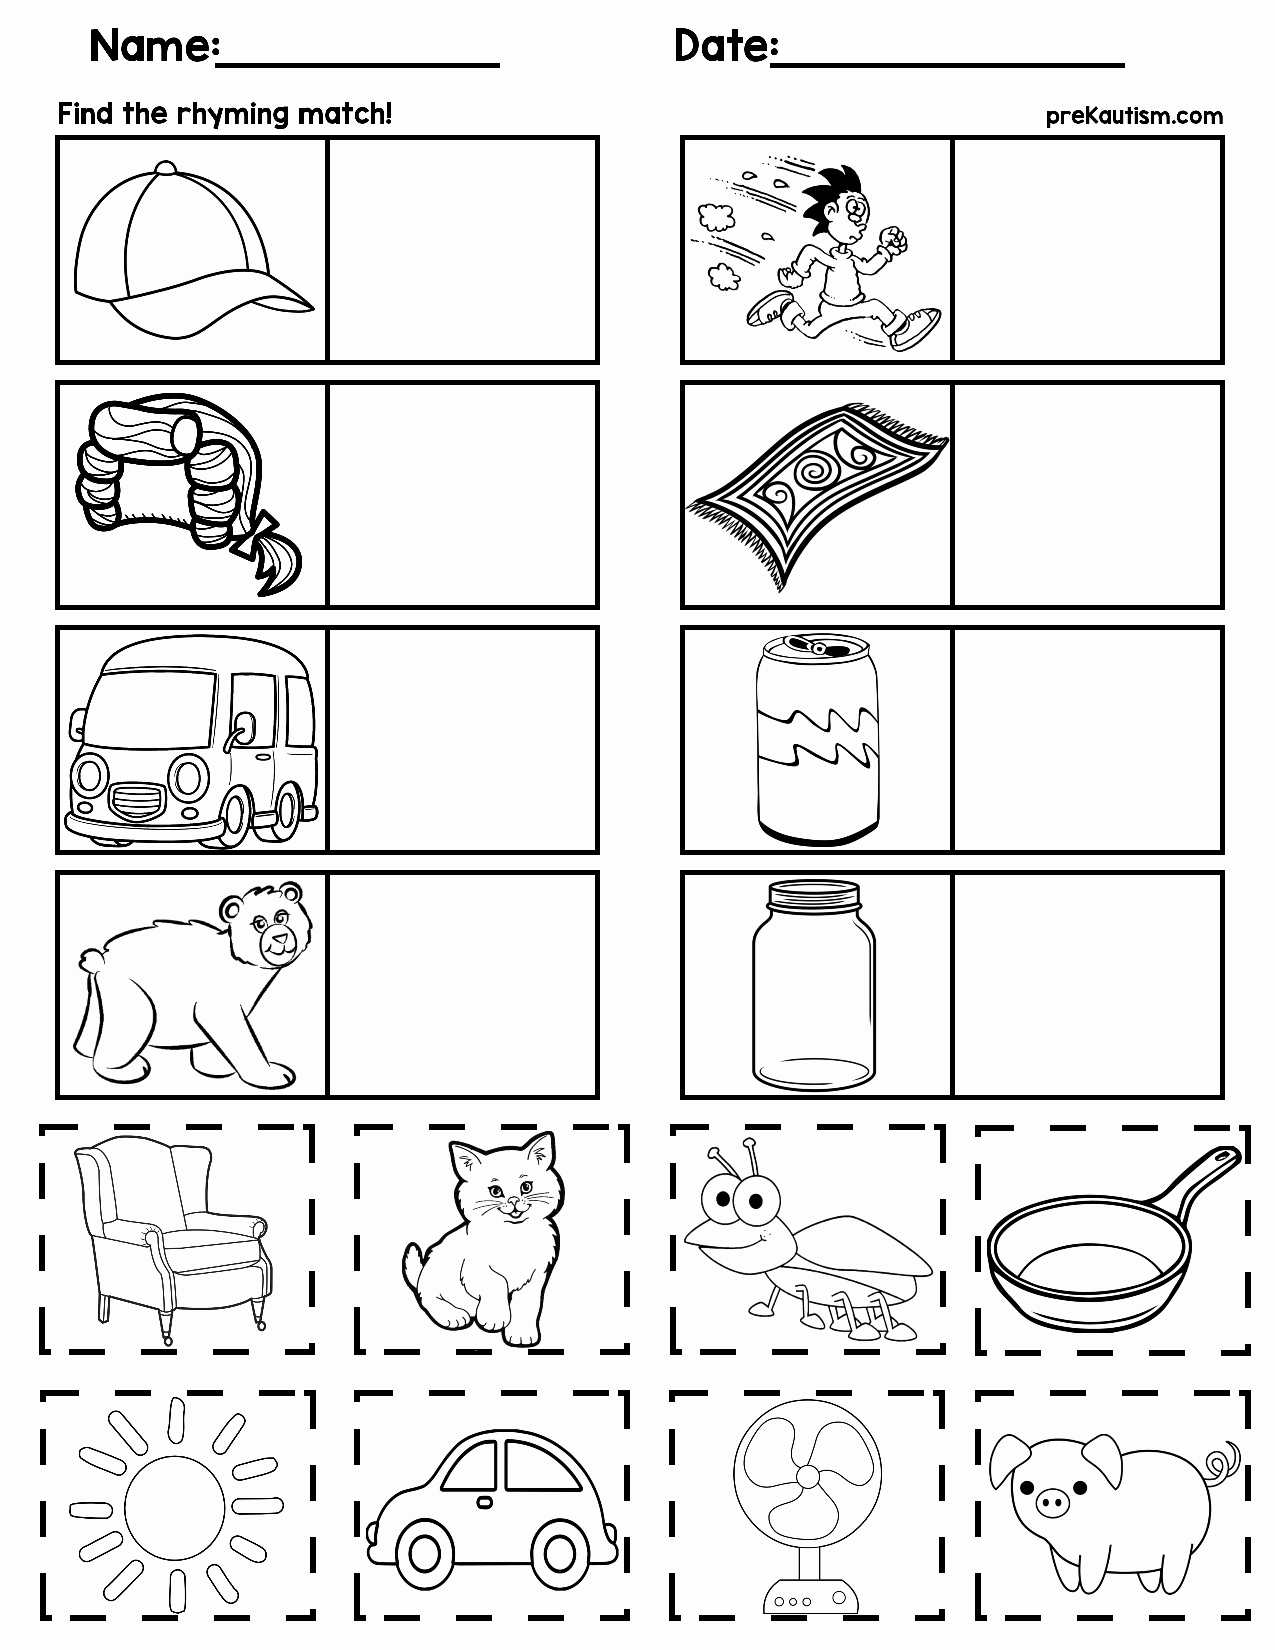 Rhyming Worksheets for Preschoolers Beautiful Matching Rhyming Words